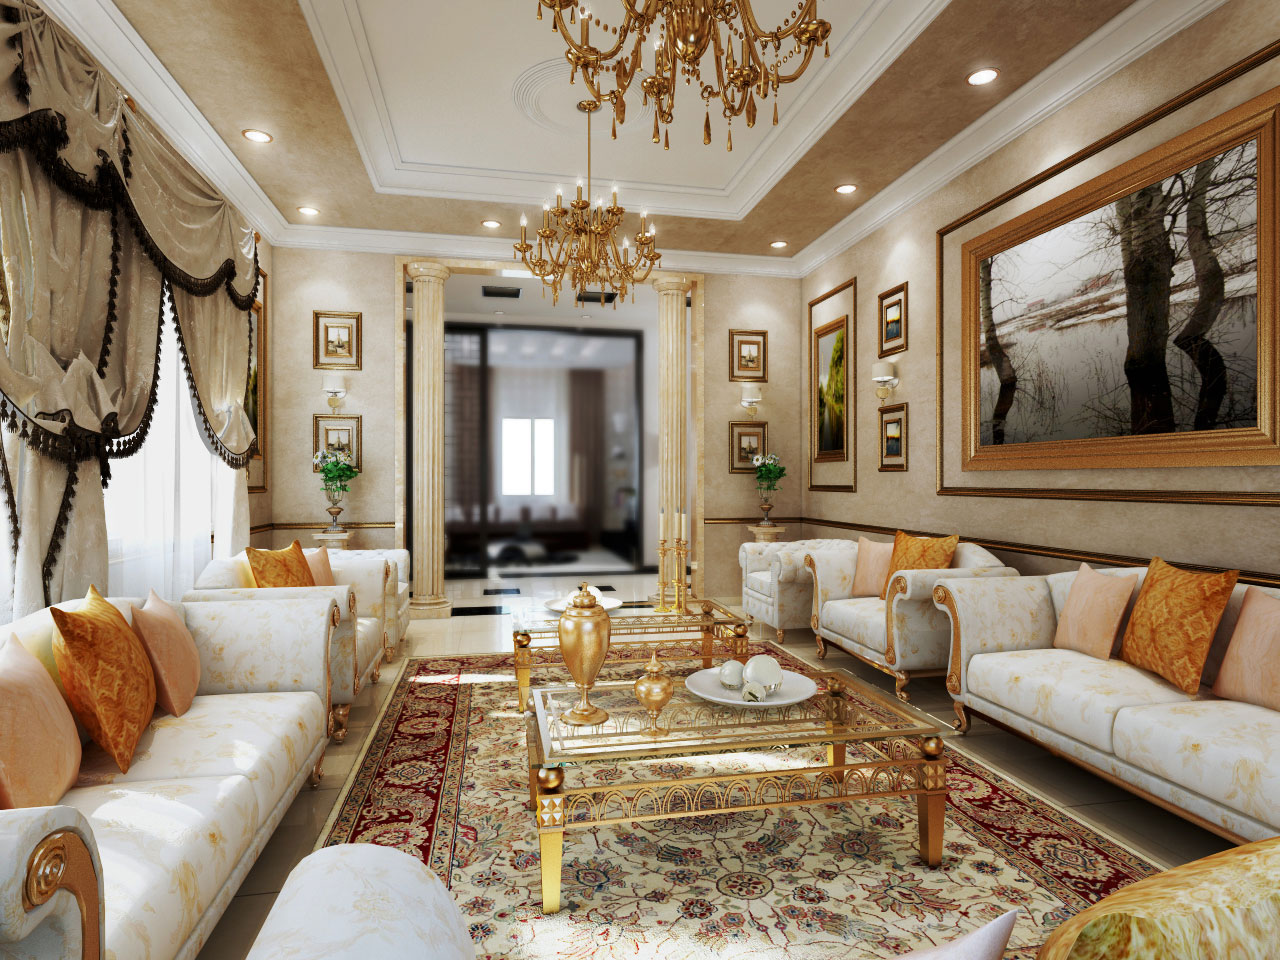 Luxury modern classic interior design ideas for living room